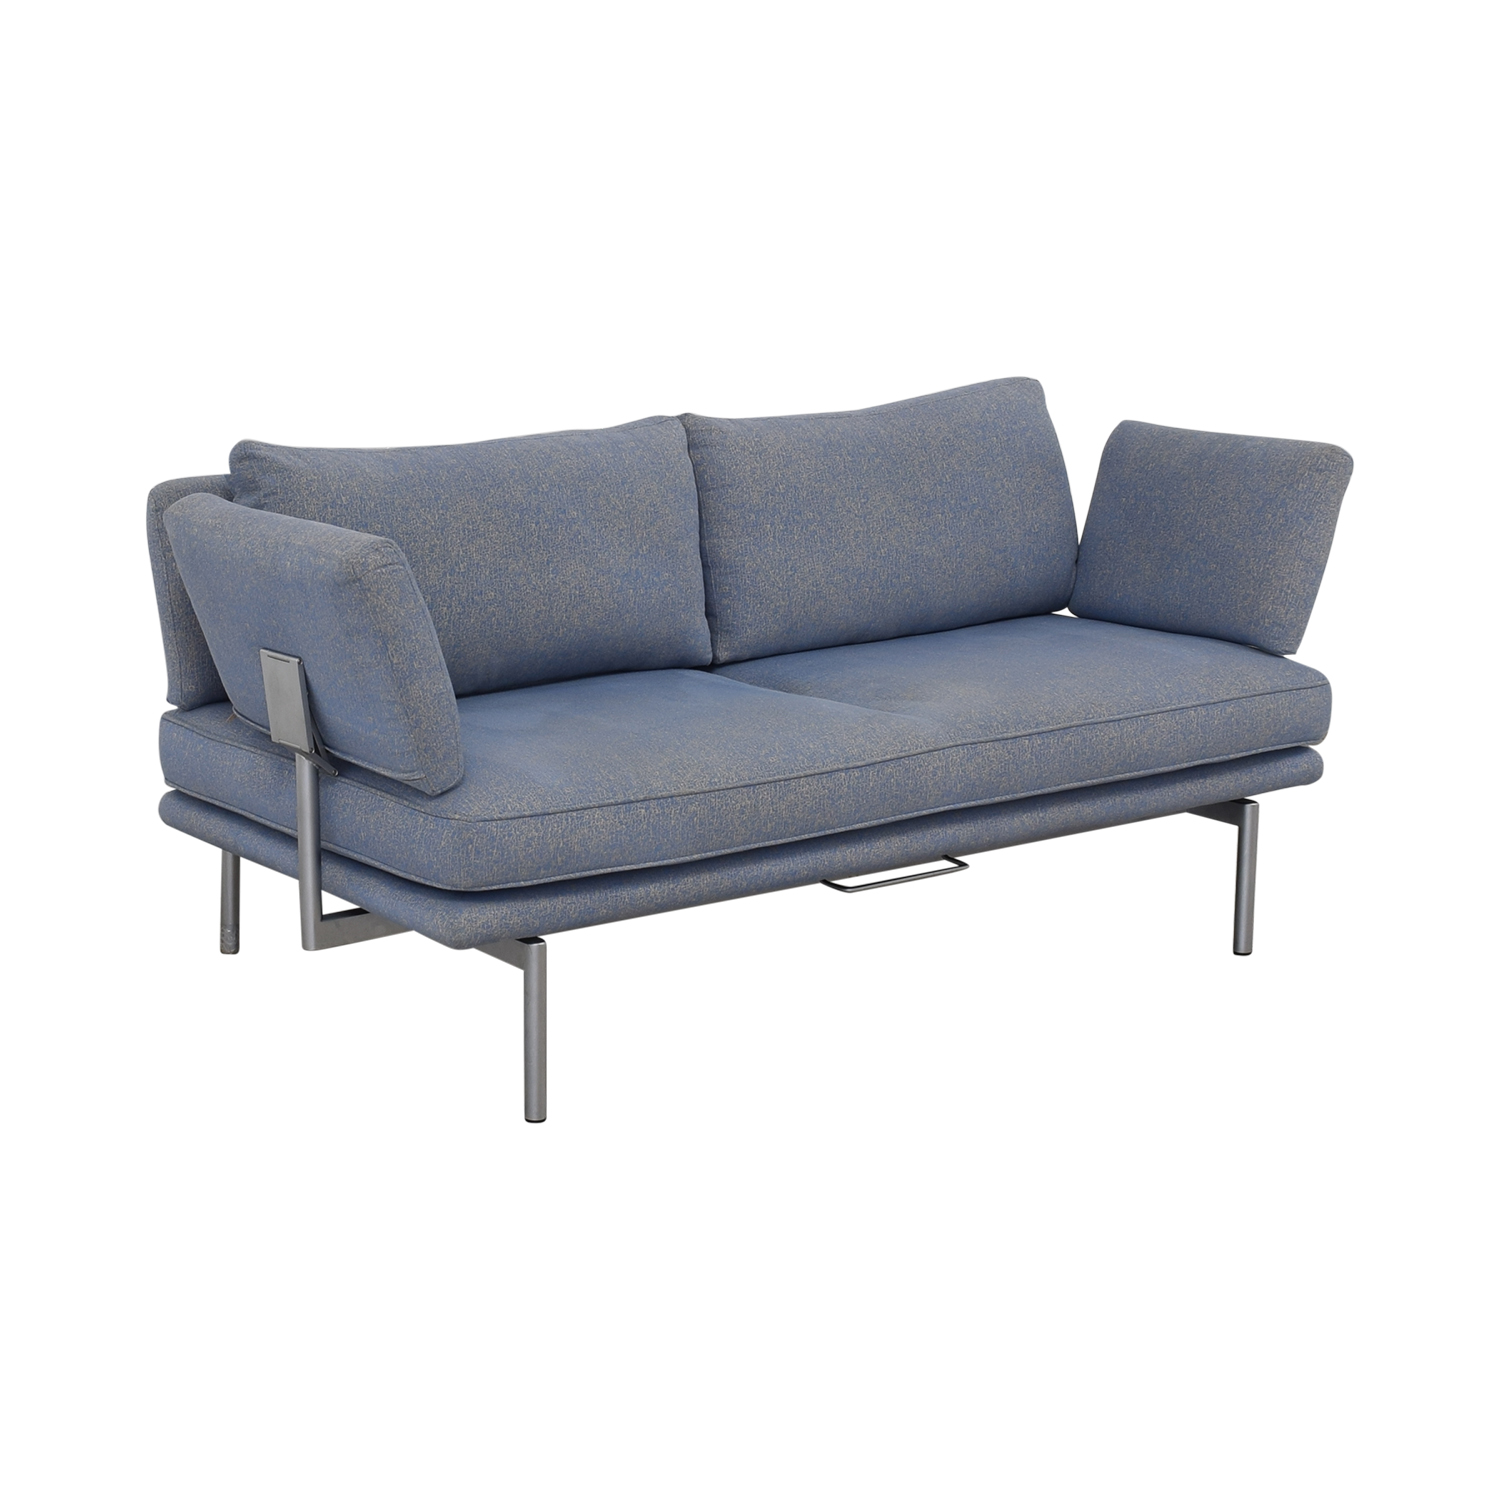 shop  Contemporary Sofa with Adjustable Arms online